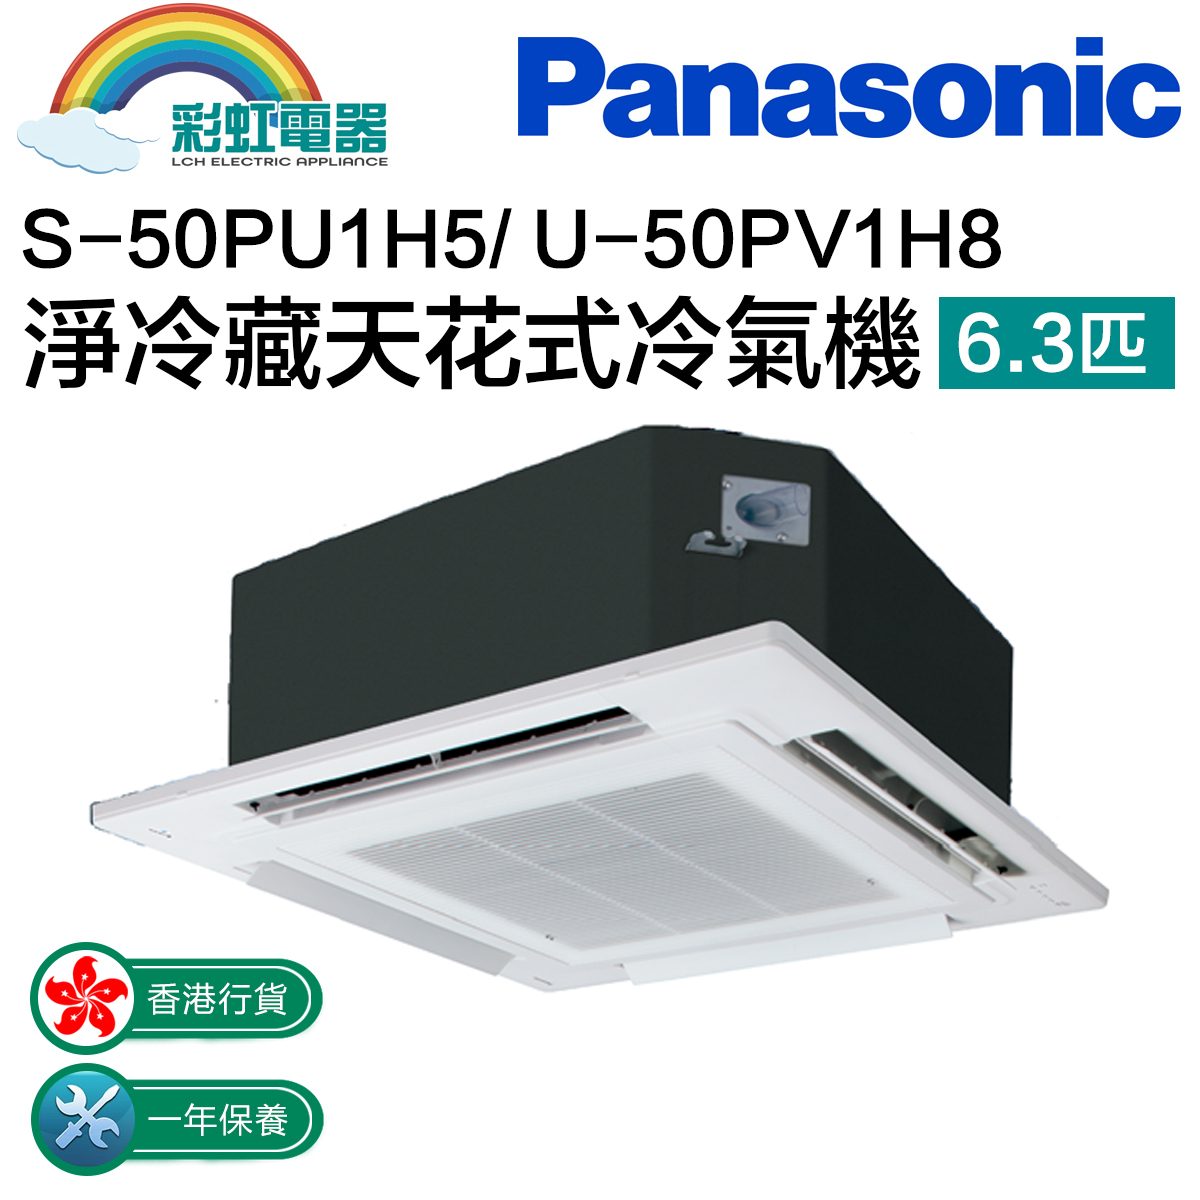 S-50PU1H5/ U-50PV1H8 Net refrigerating day fancy air conditioner 6.3 horse